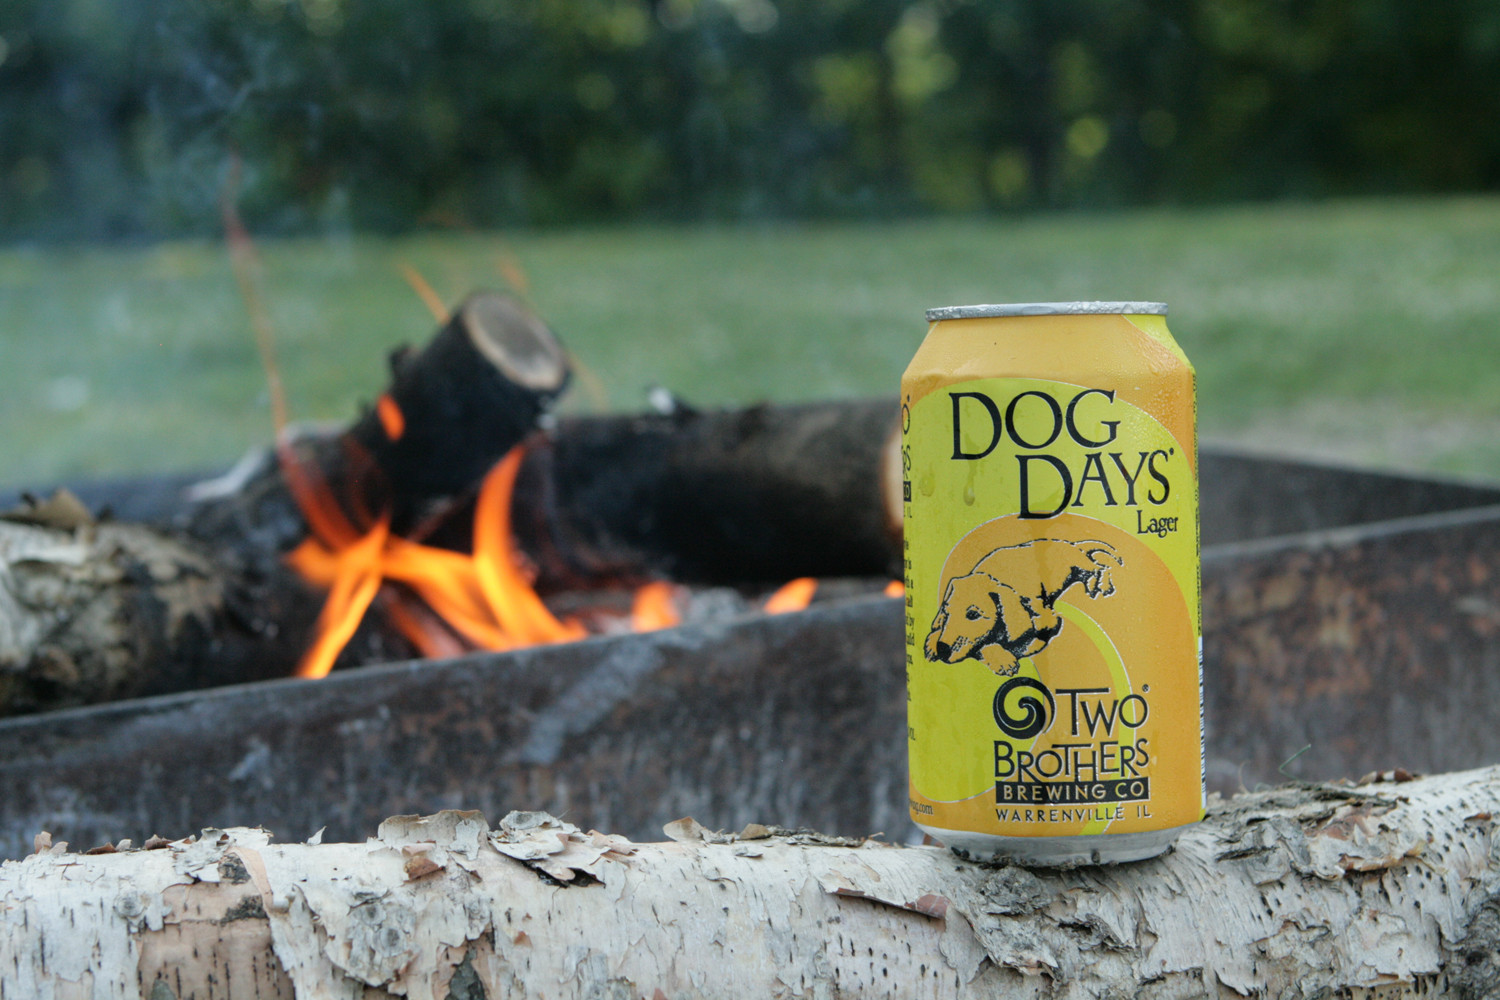 Two Brothers' Dog Days Dortmunder lager is a good summer beer.